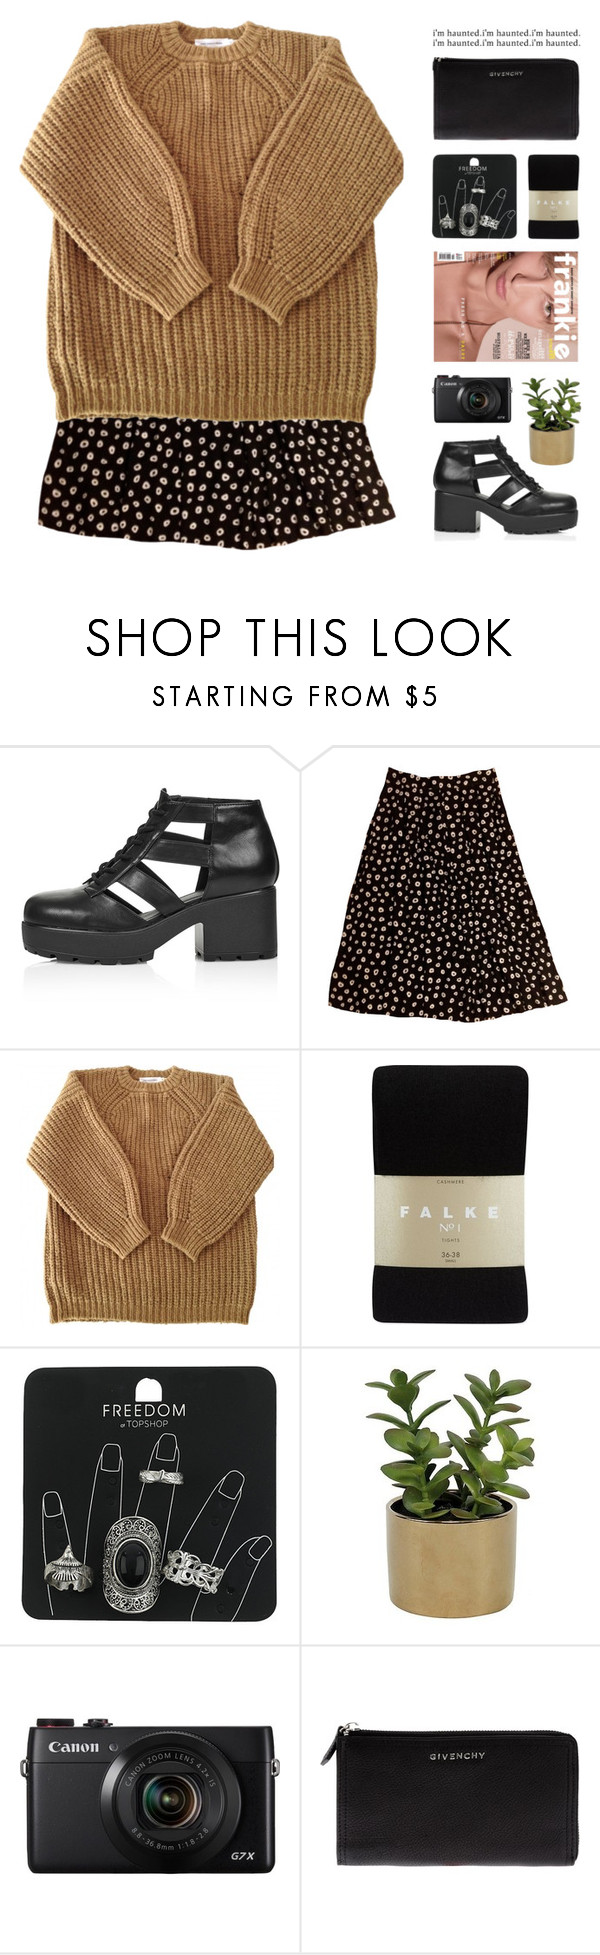 """""""Mayra"""" by chelseapetrillo ❤ liked on Polyvore featuring Topshop, Étoile Isabel Marant, Falke, Threshold and Givenchy"""